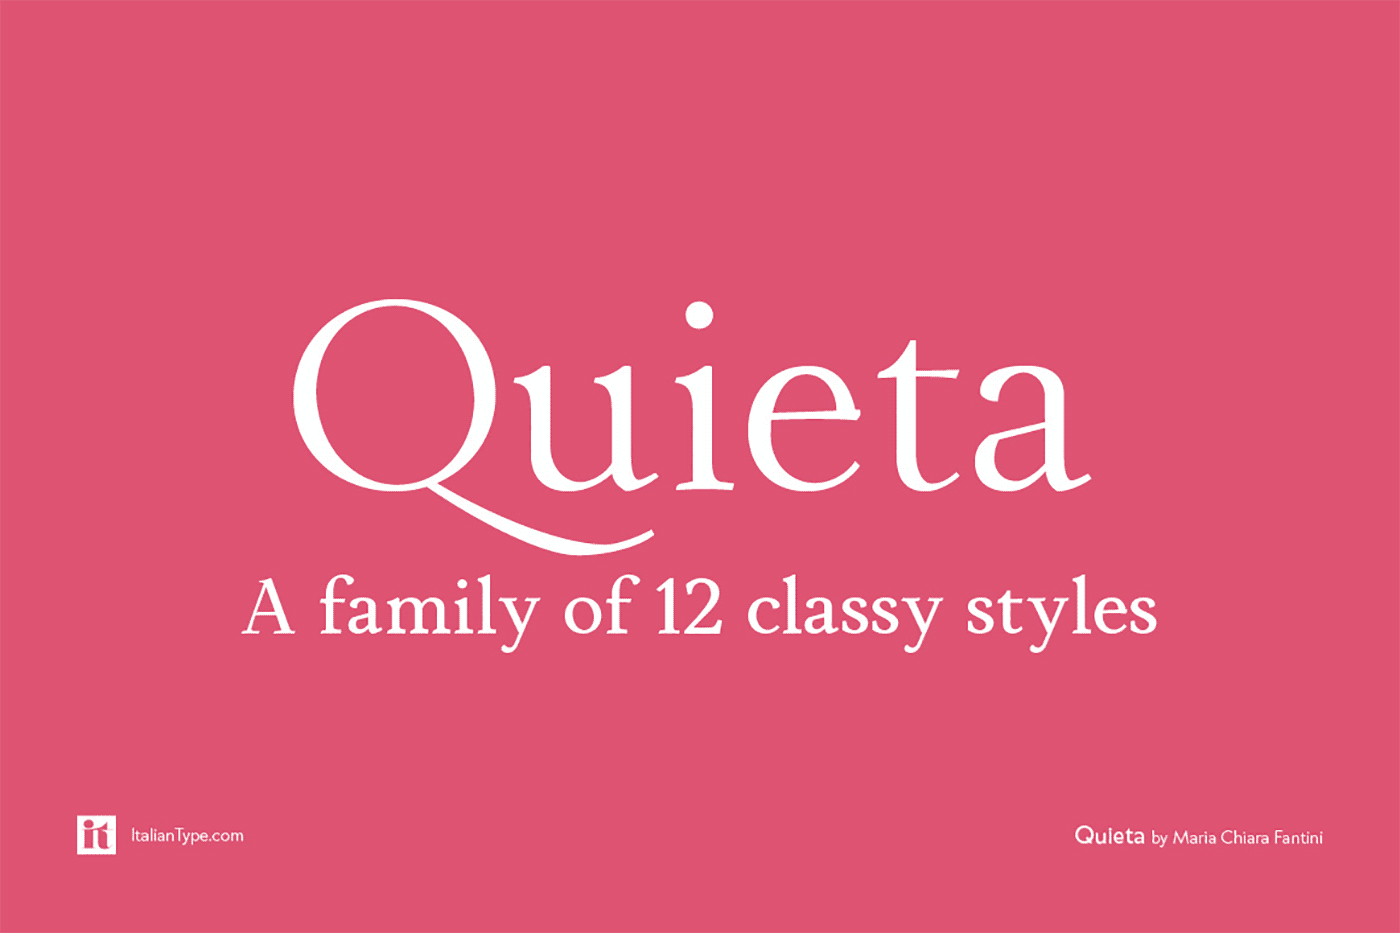 A family of 12 classy styles.